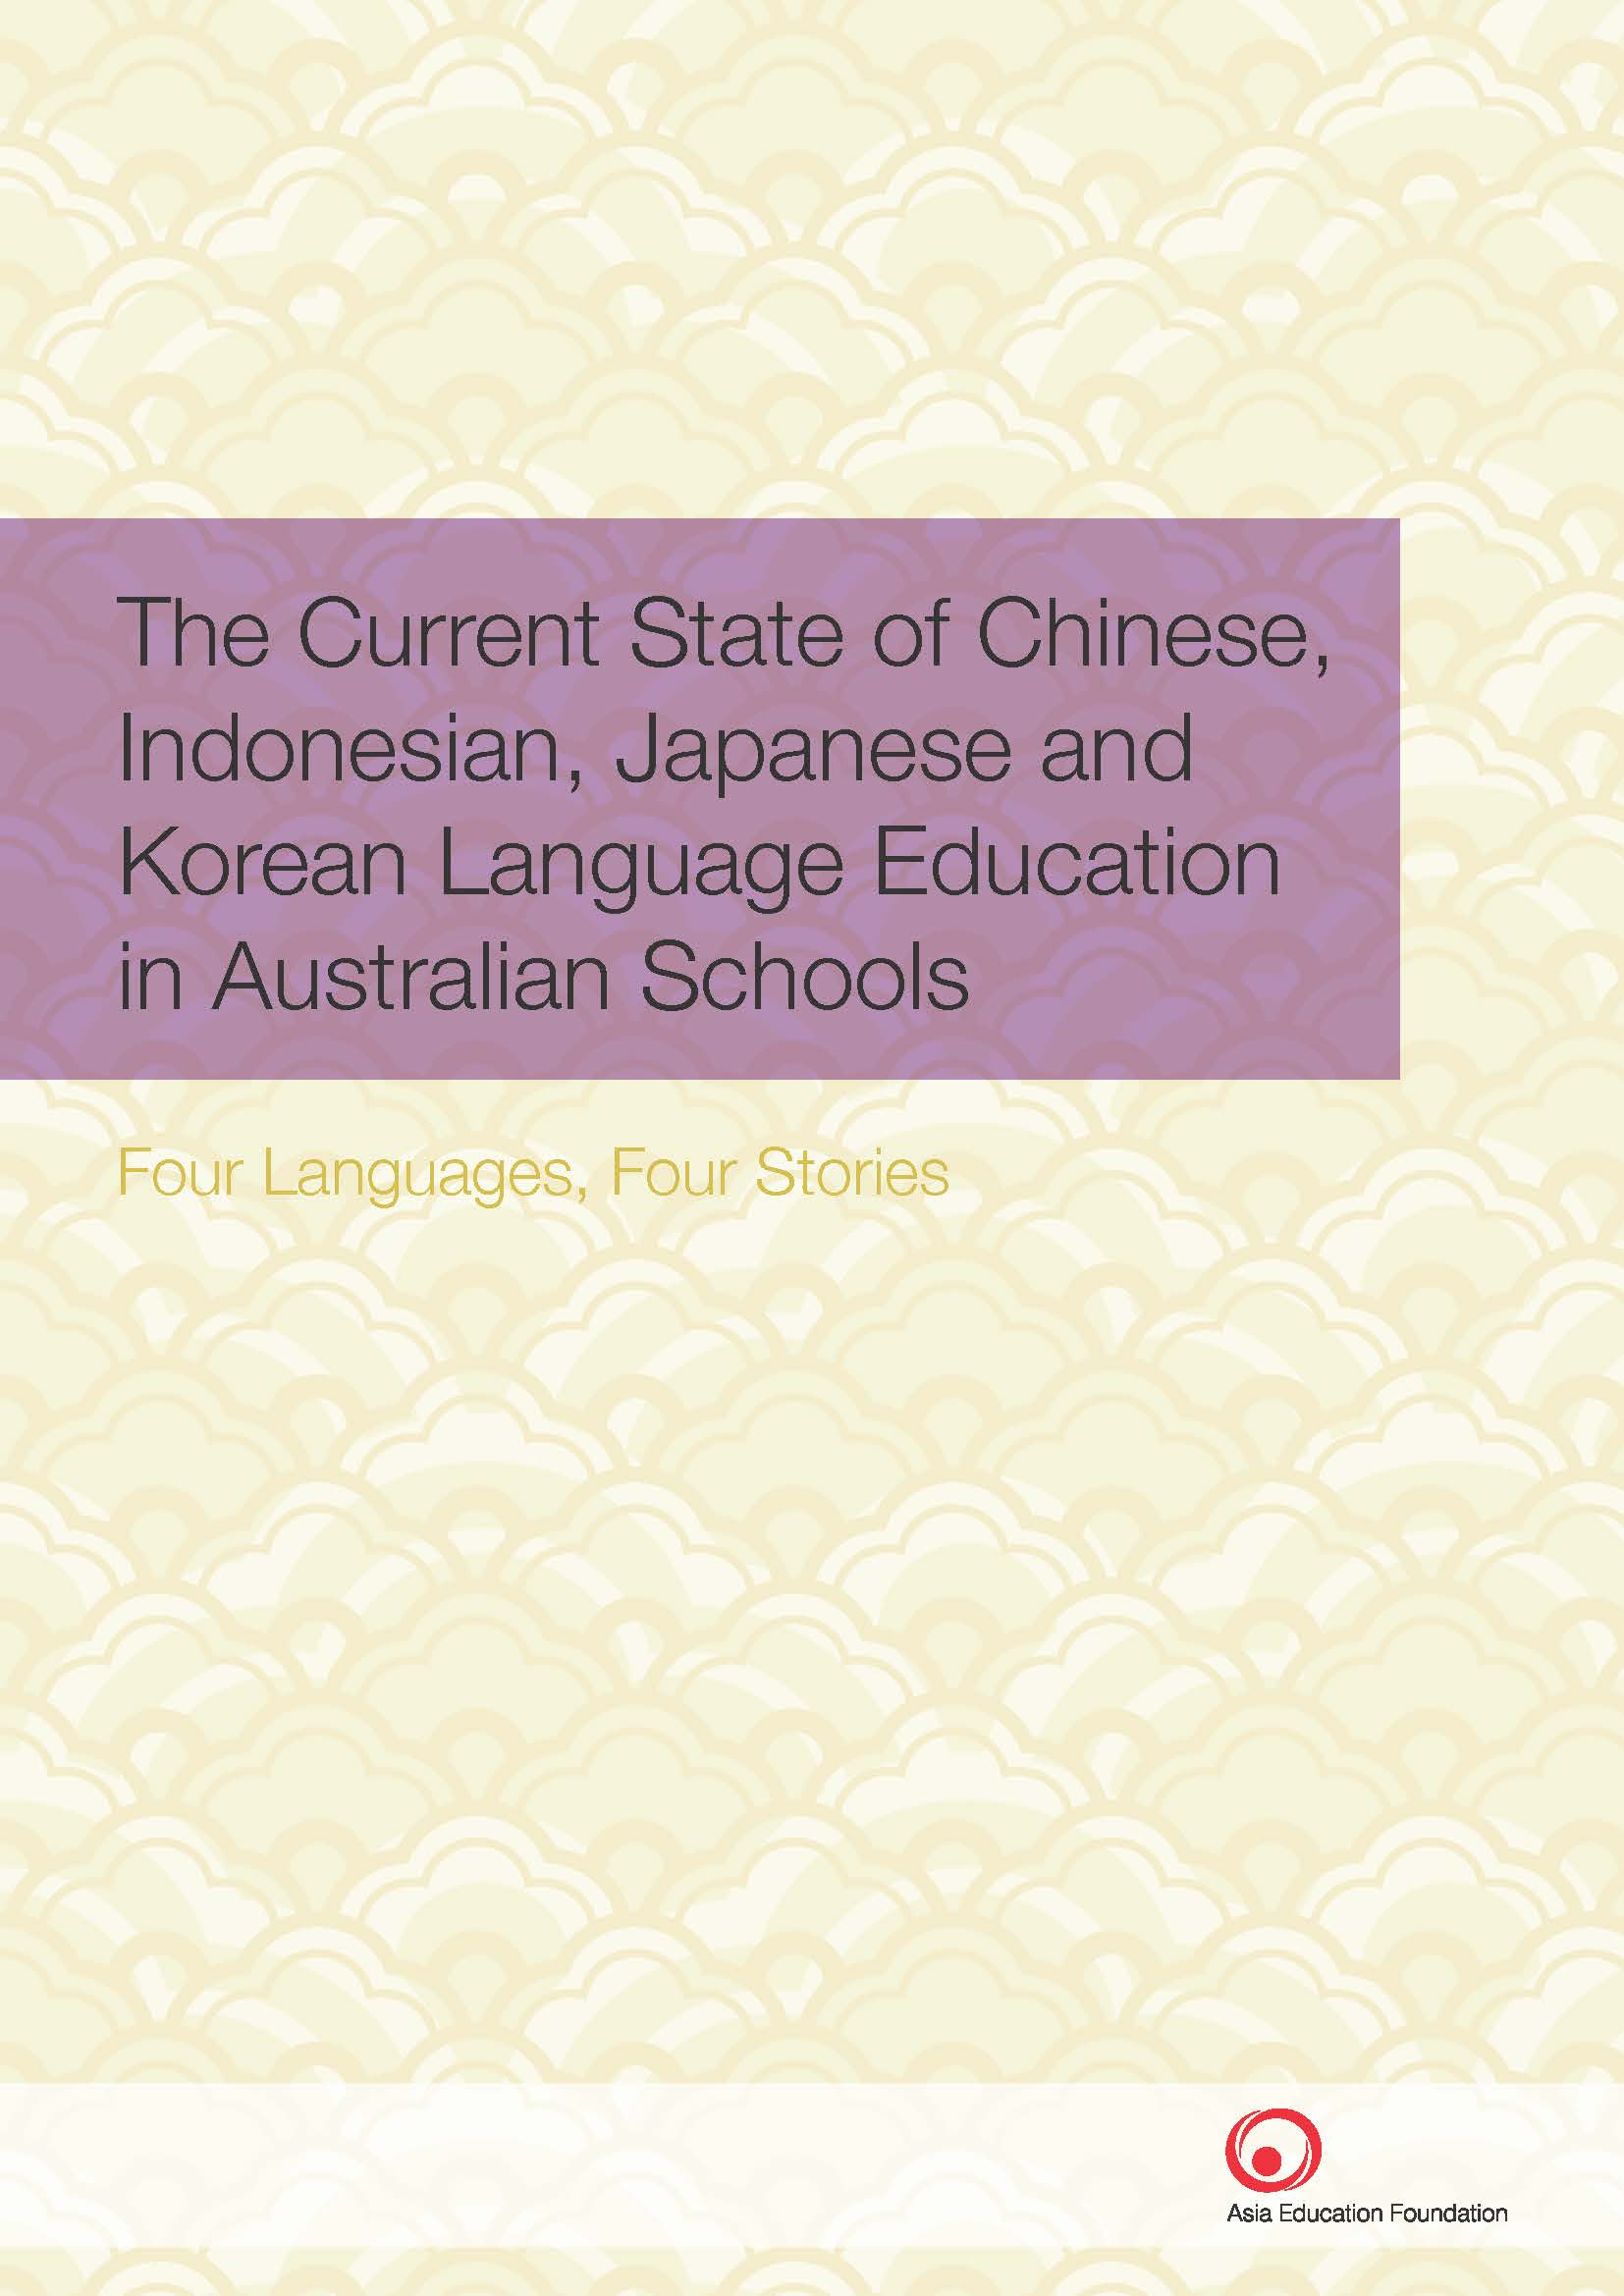 Current state of Chinese, Indonesian, Japanese and Korean Language Education in Australian Schools